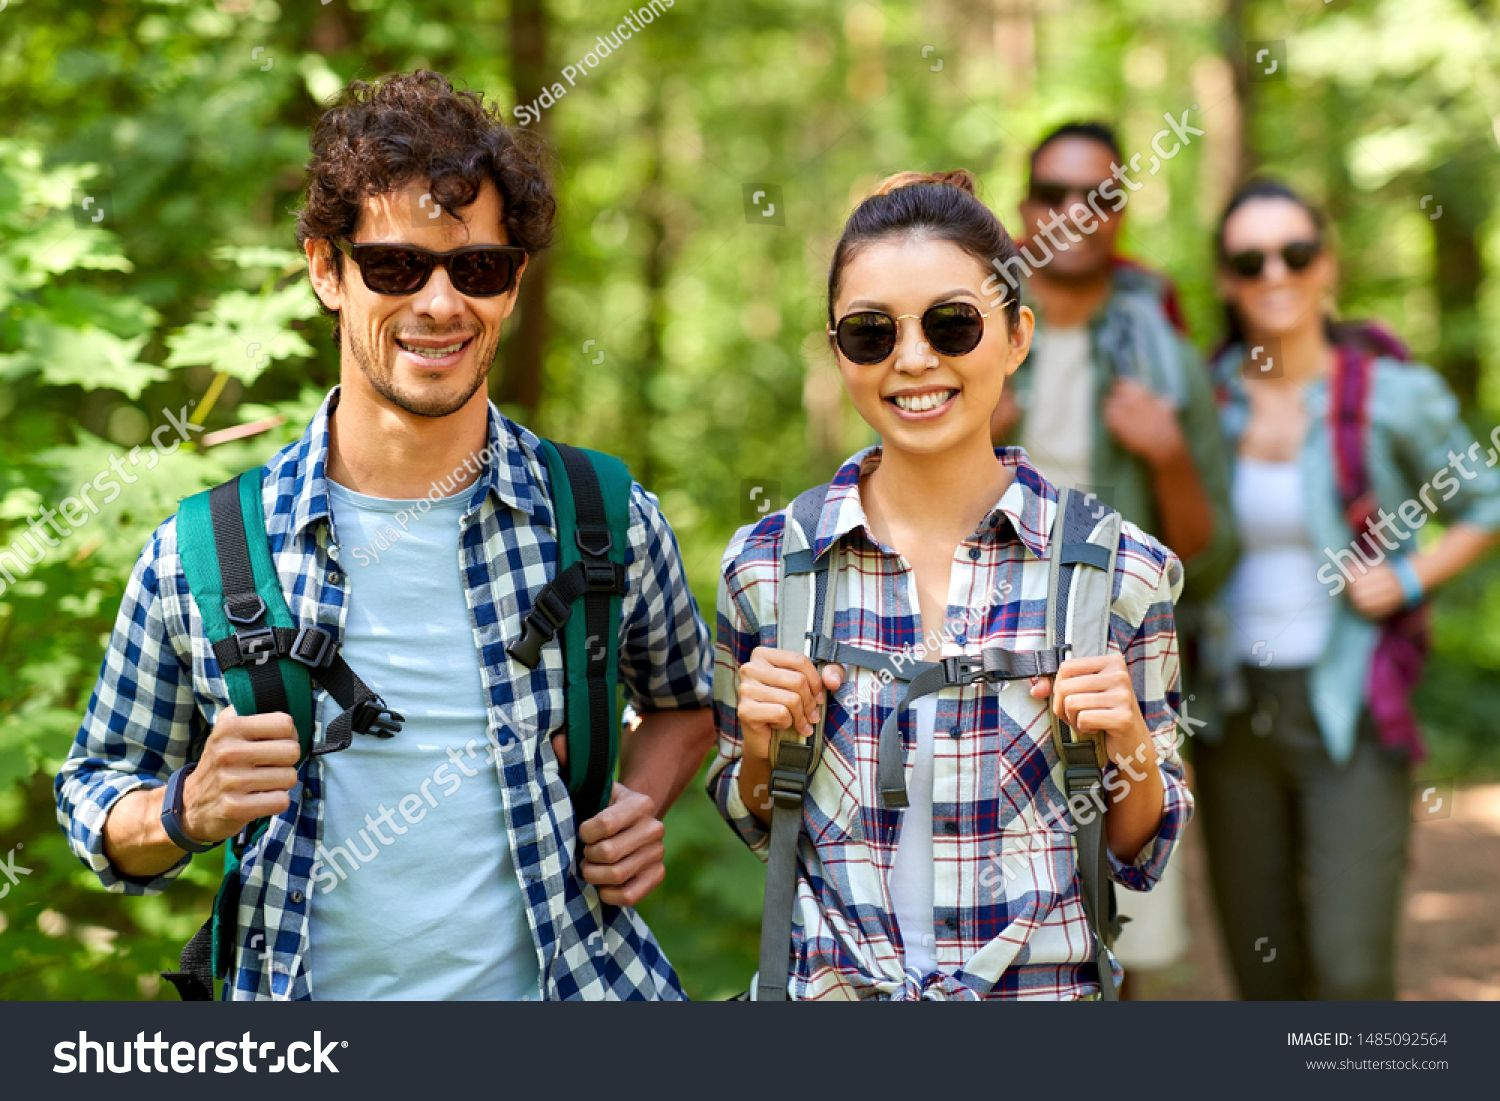 travel tourism hike and people concept  group of friends walking with backpacks in forest